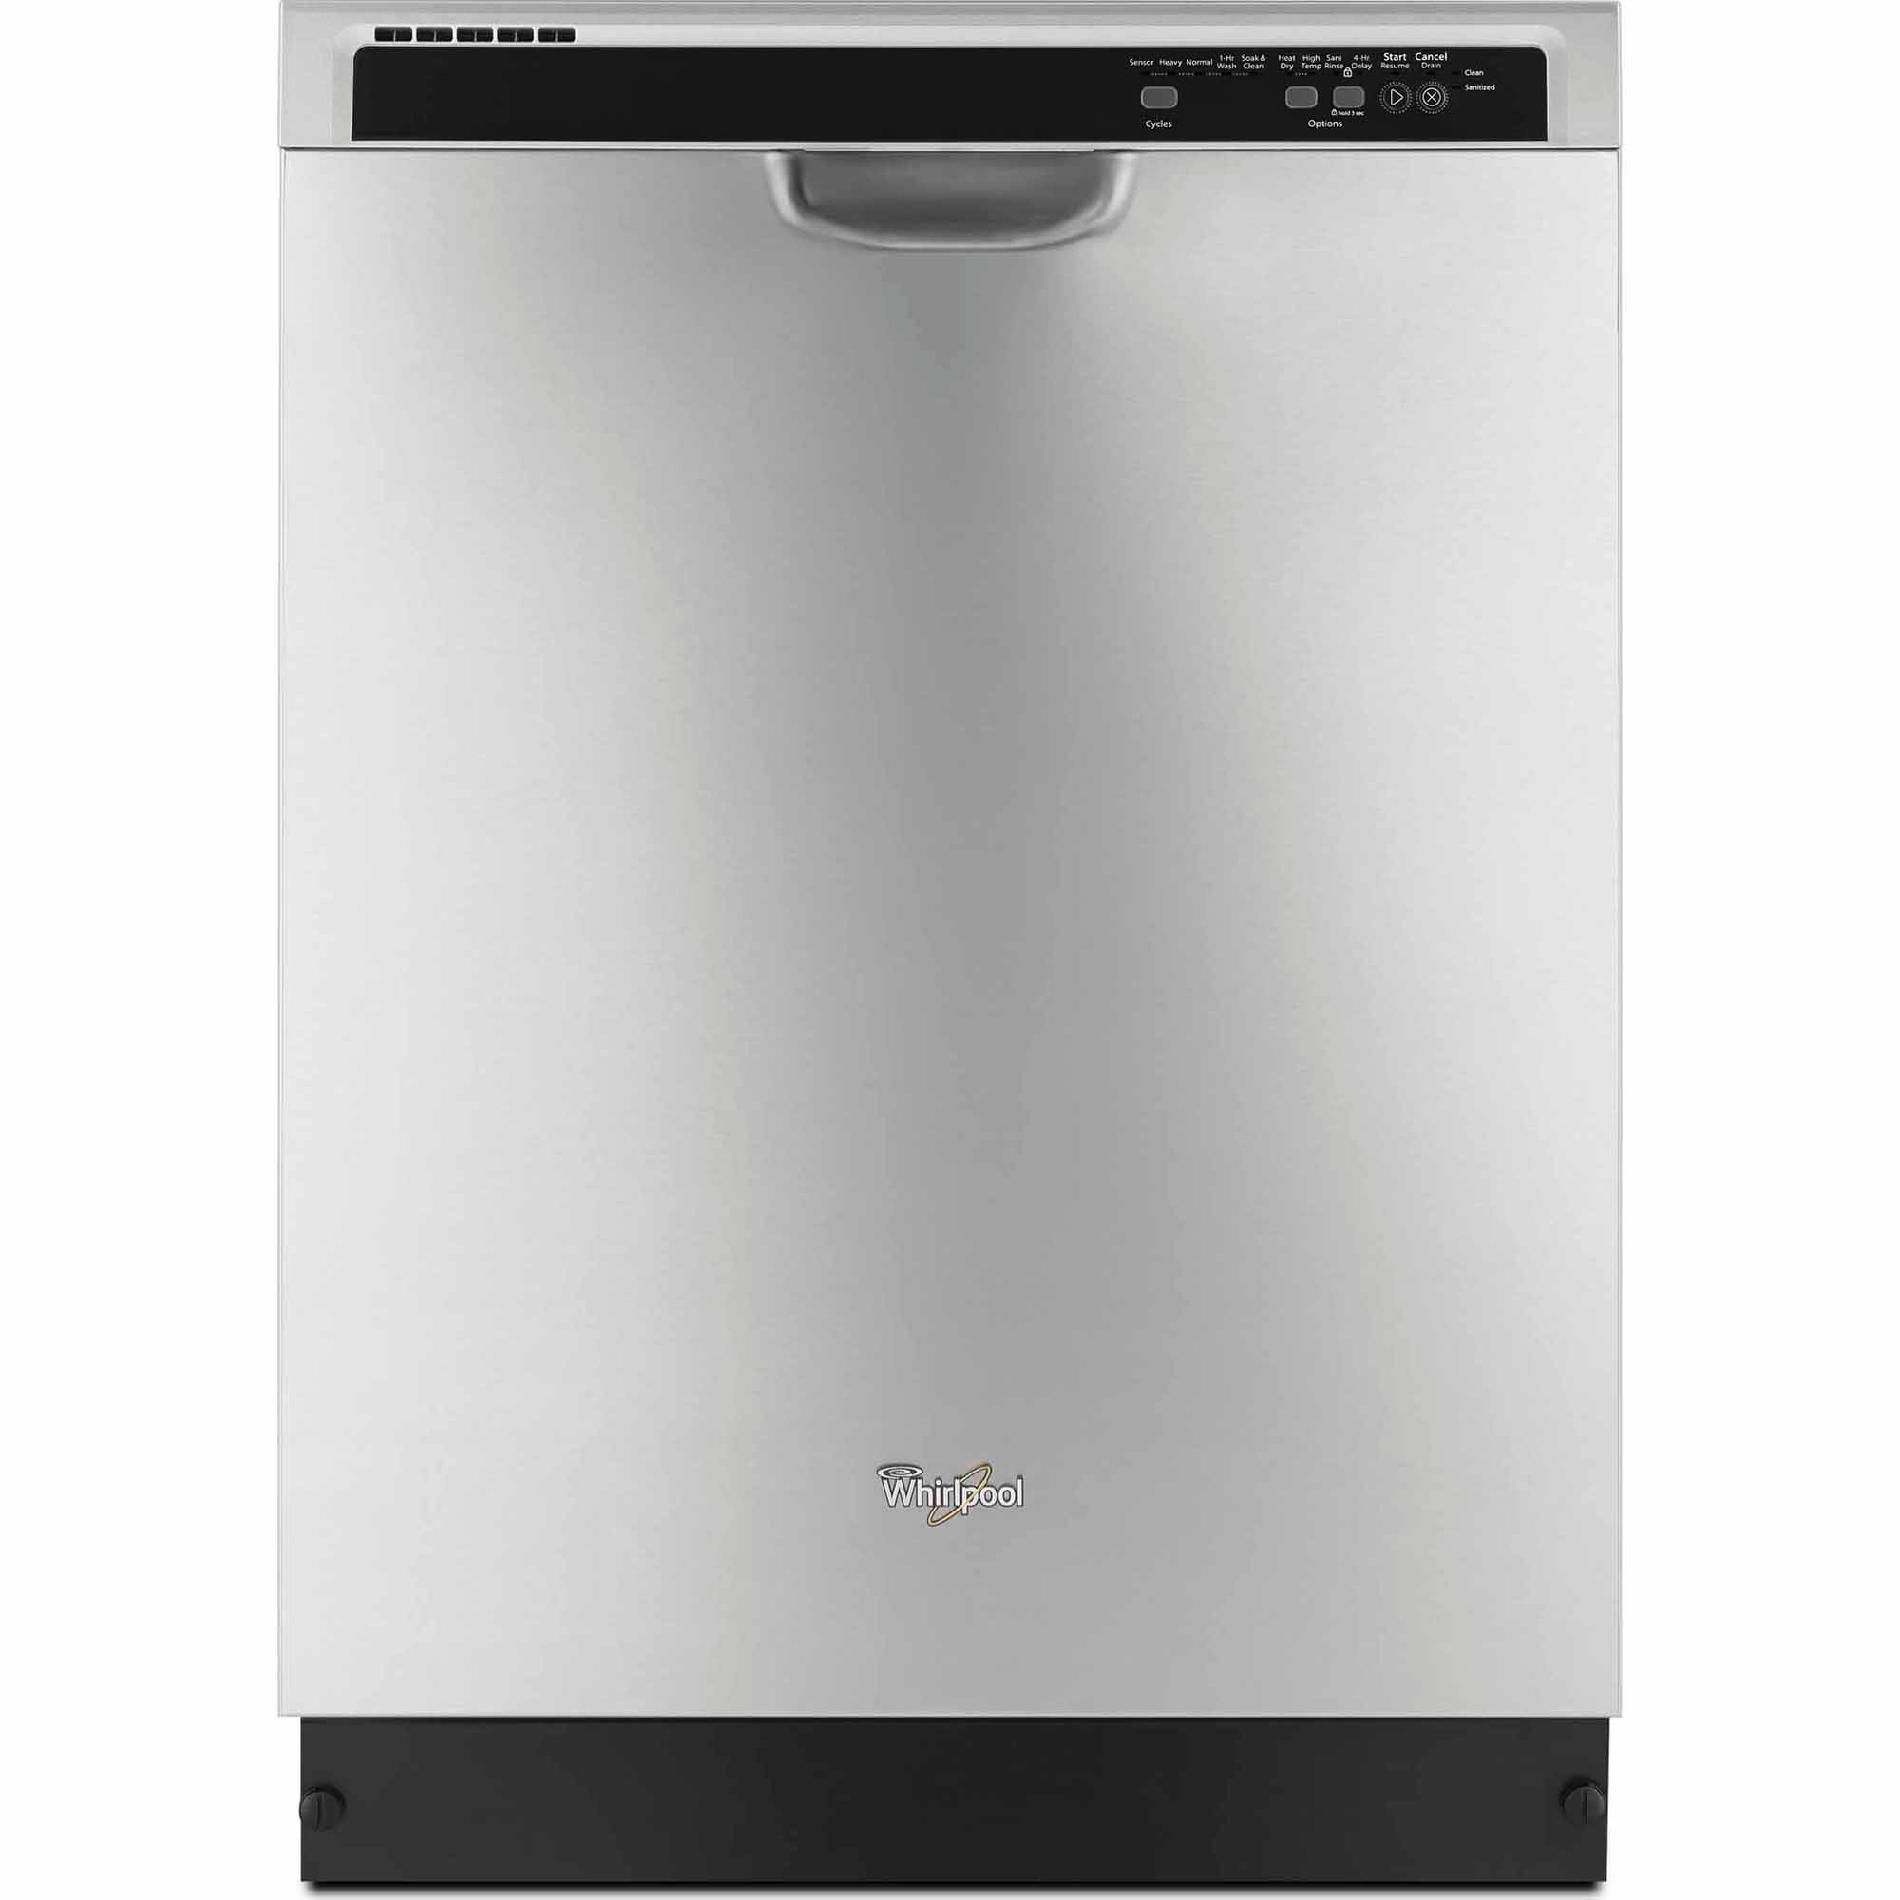 Energy Star&Reg; Certified Built-In Dishwasher With Sensor Cycle, Monochromatic Stainless Steel